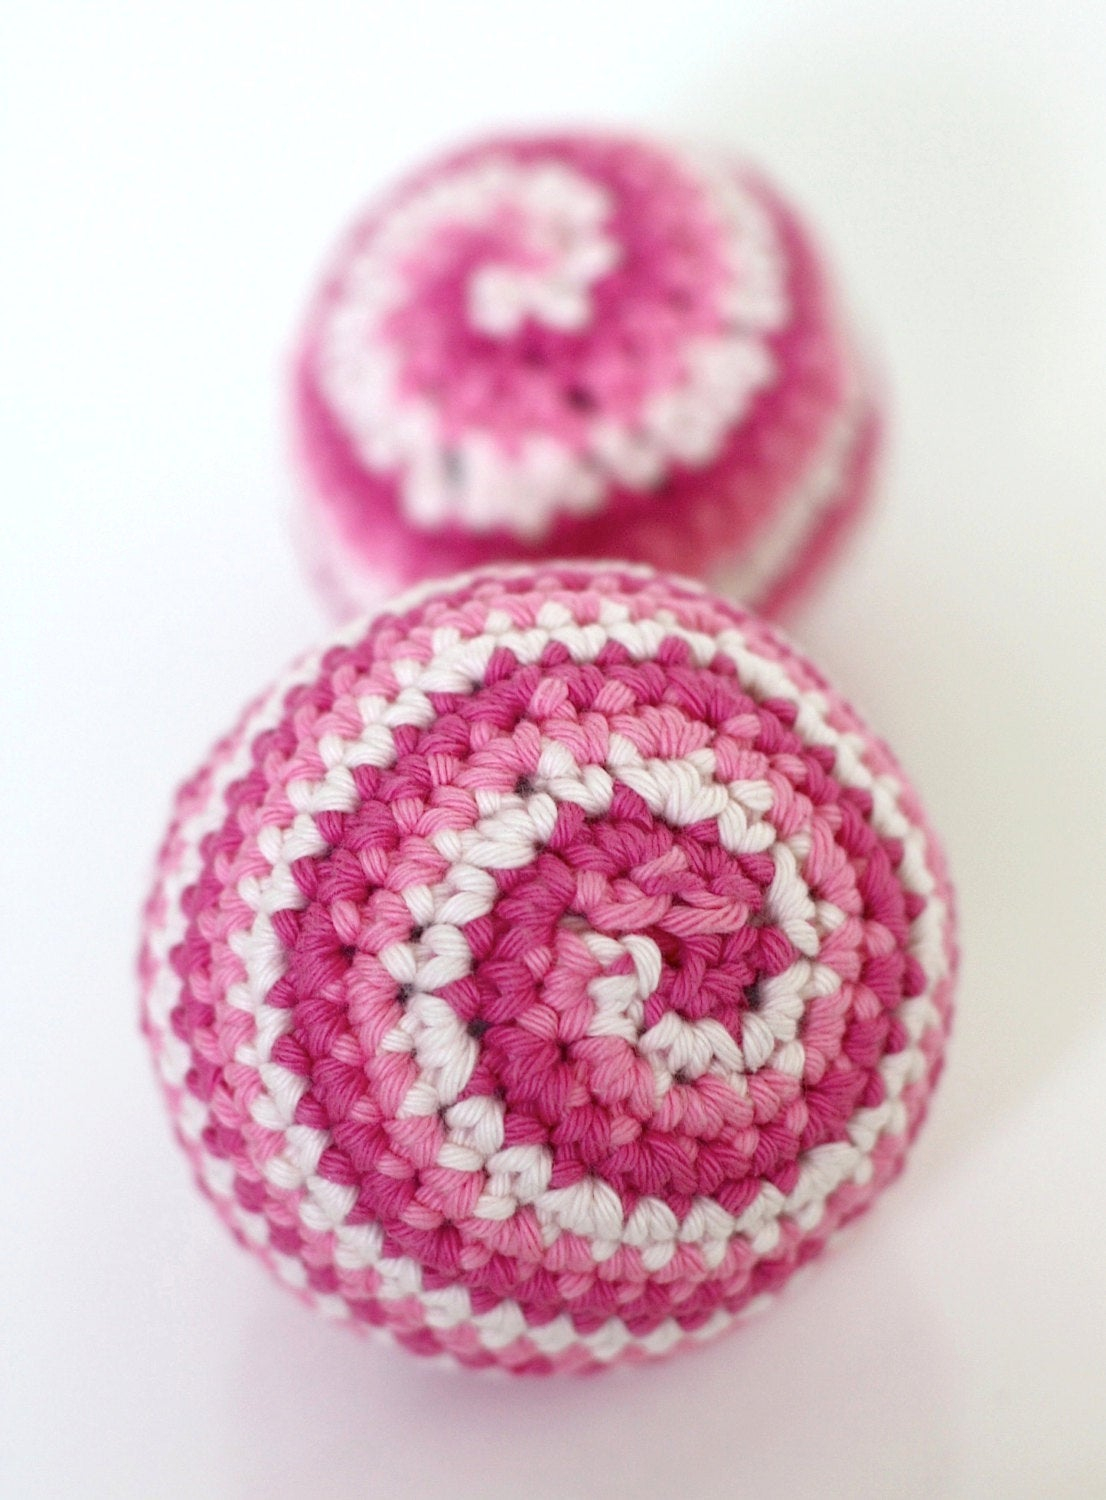 Crochet Ball Pattern Ba Candy Spiral Ball Crochet Toy Pattern Digital Etsy